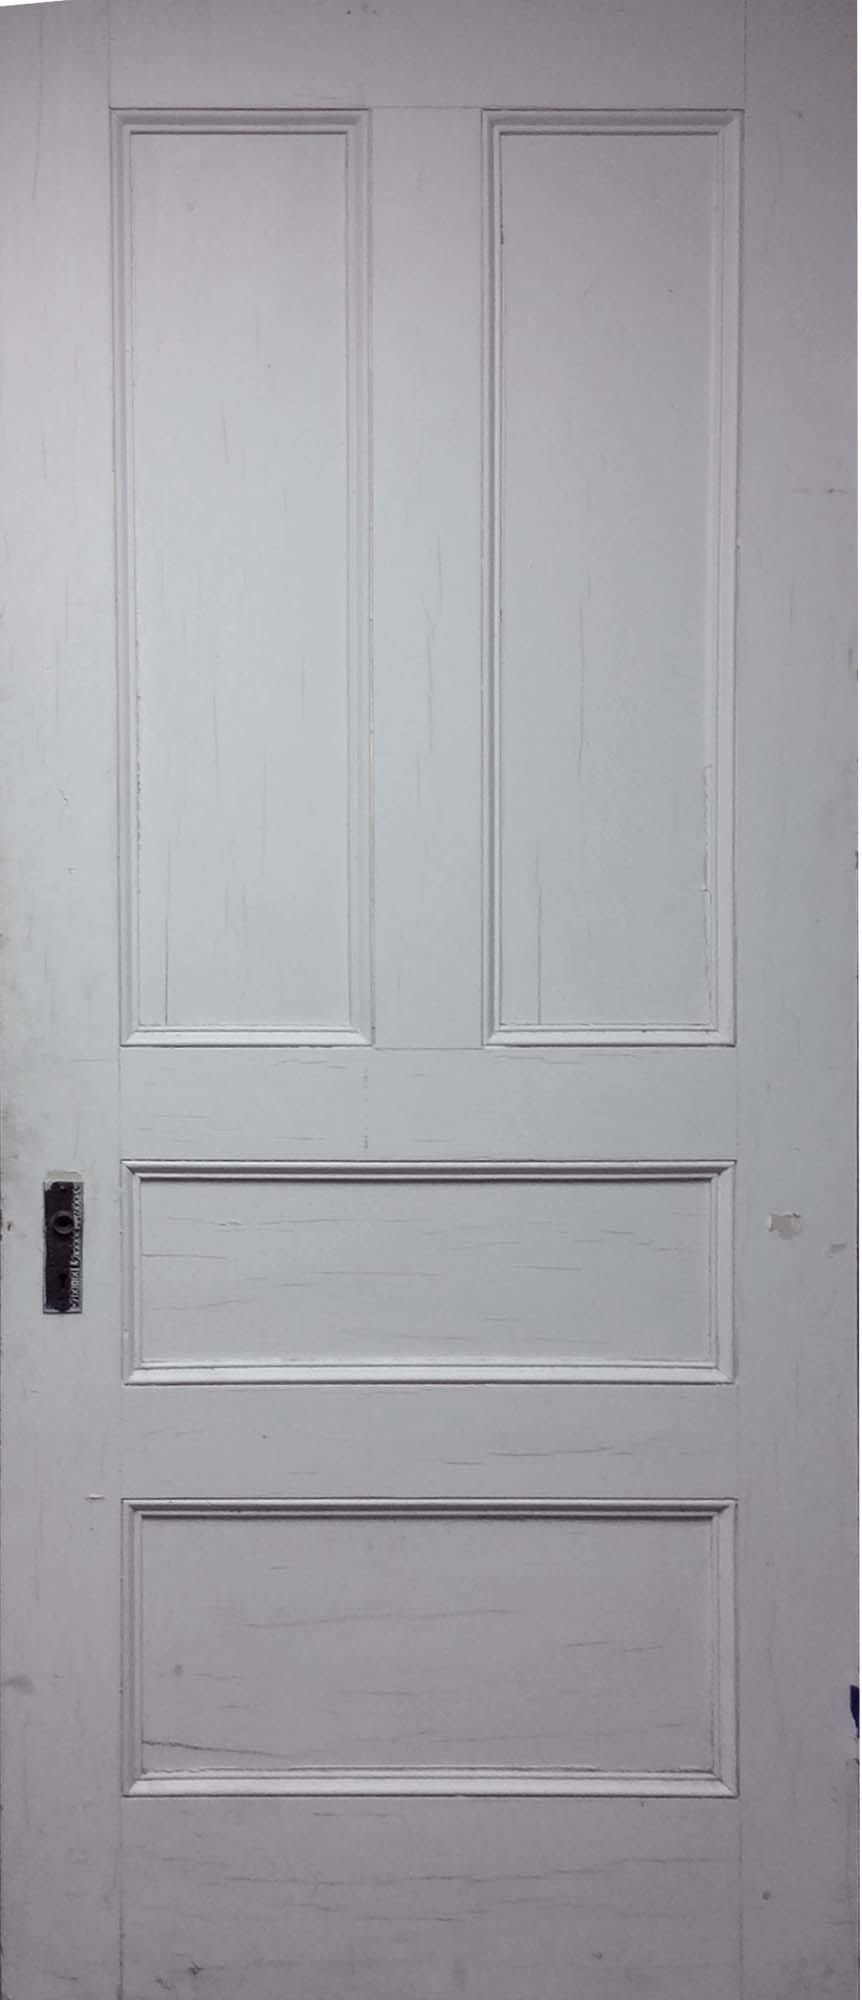 Early 4-Panel Doors